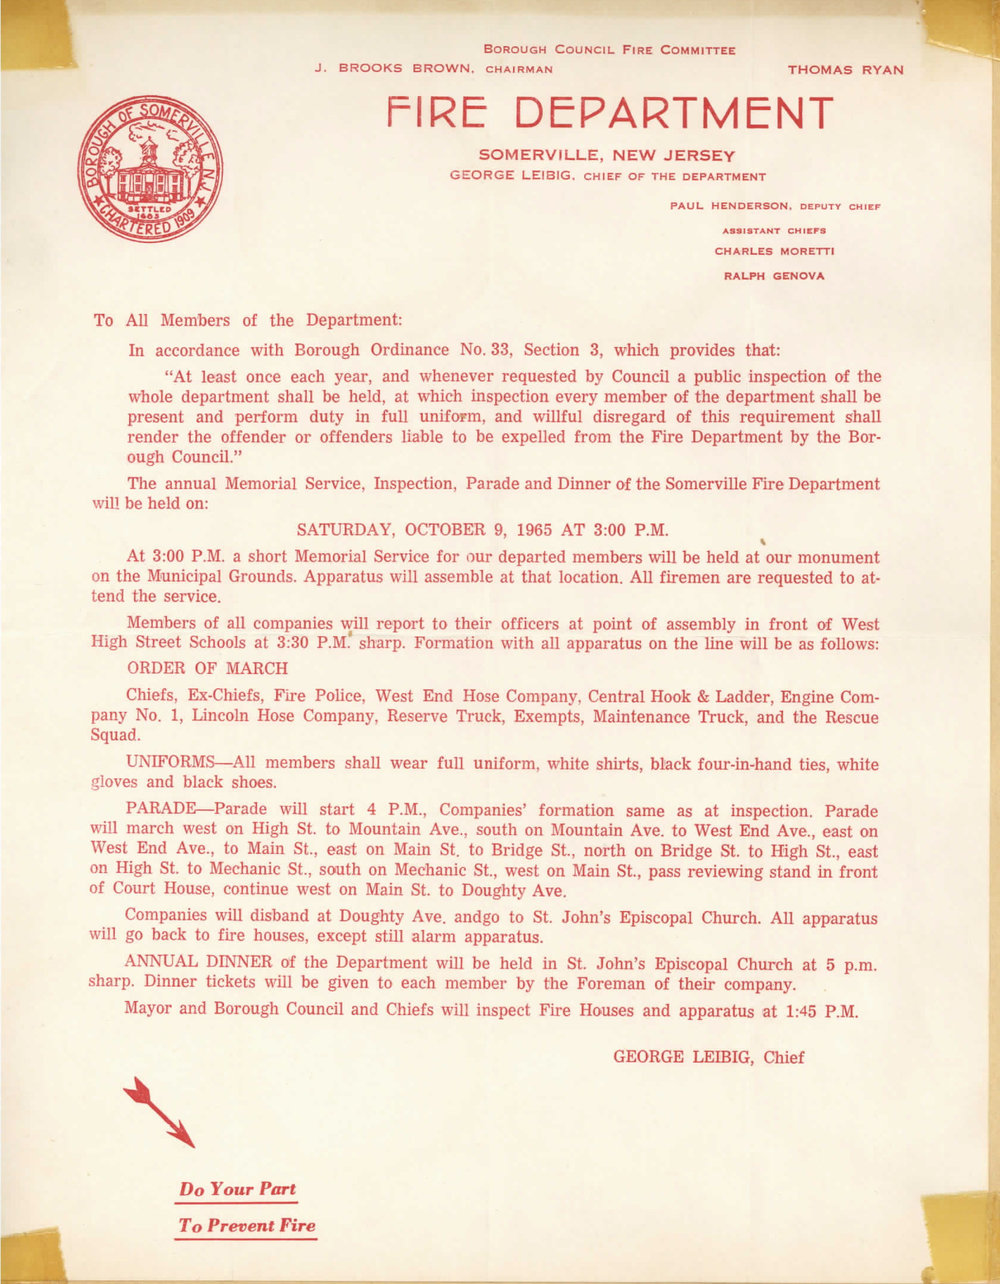 1965 Inspection Day.memo_Page_1_Image_0001.jpg